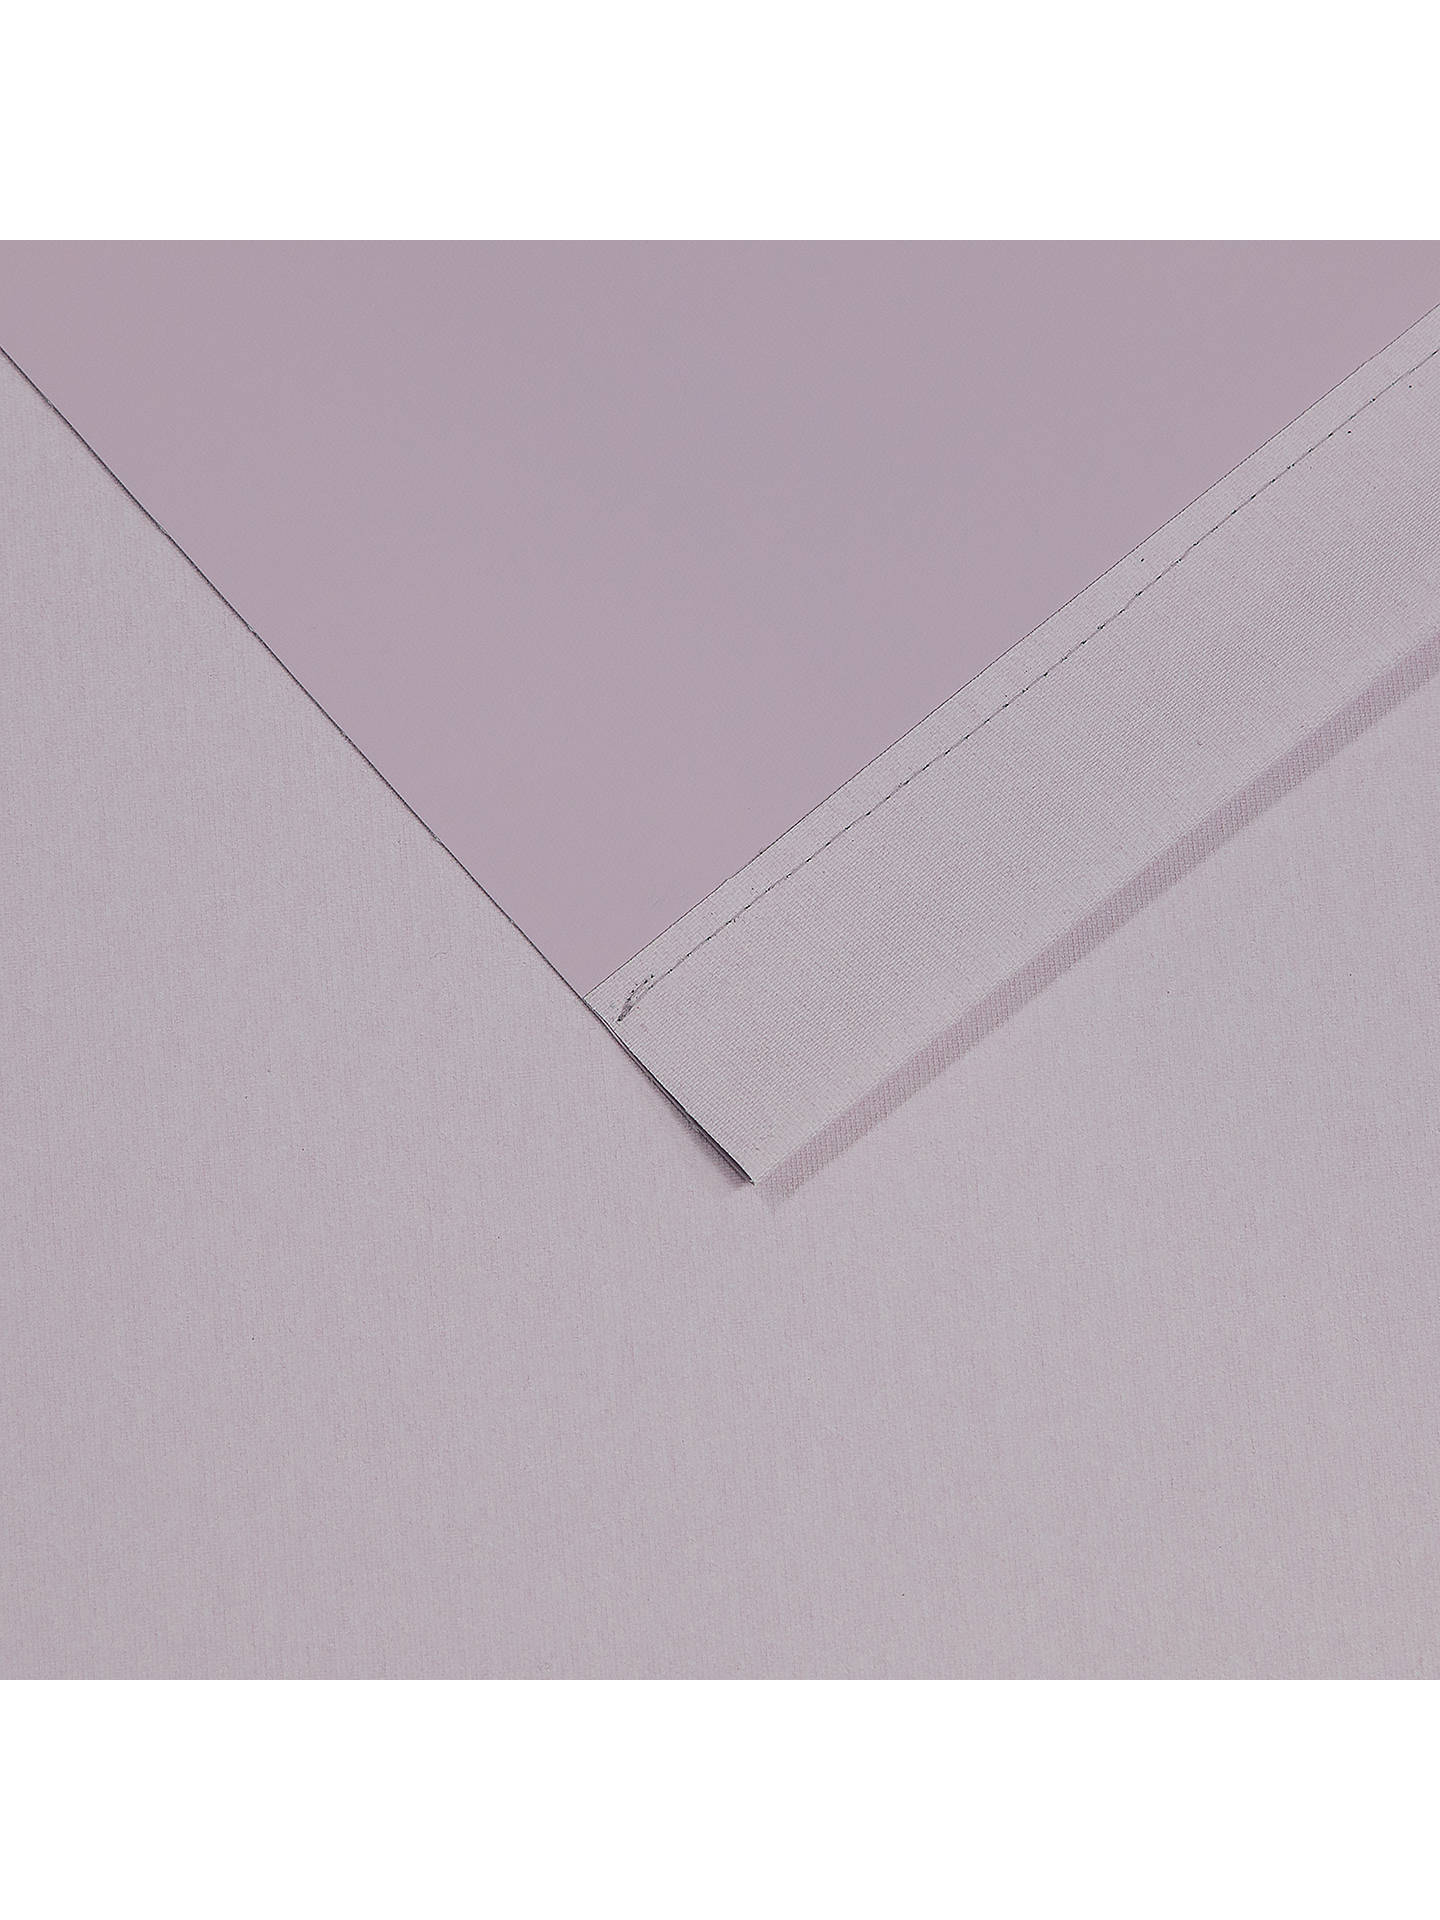 BuyAdditional Fabric for Bloc Fabric Changer Blackout Blind, Sweet Rose, W61cm Online at johnlewis.com